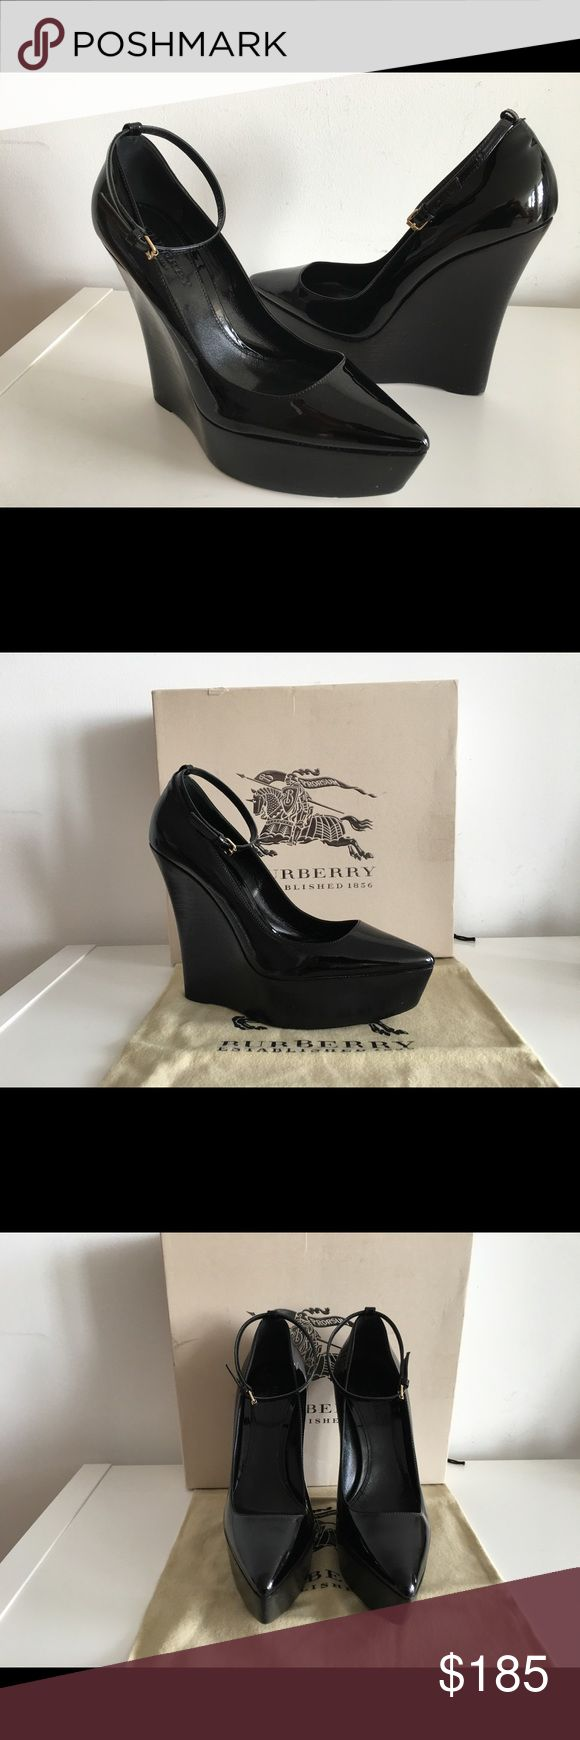 """BURBERRY PRORSUM CHATSWORTH PLATFORM WEDGE PUMPS BURBERRY PRORSUM CHATSWORTH PLATFORM WEDGE PUMPS, BLACK PATENT LEATHER, SIZE 40, WEDGE 6"""", PLATFORM 1 3/4"""", ANKLE STRAP WITH BUCKLE CLOSURE, LEATHER UPPER, LINING AND SOLE, NO SIGNS OF WEAR ABOVE SOLE, GENTLY USED IN EXCELLENT CONDITION, COMES WITH BOX AND DUST BAG. Burberry Shoes Platforms"""